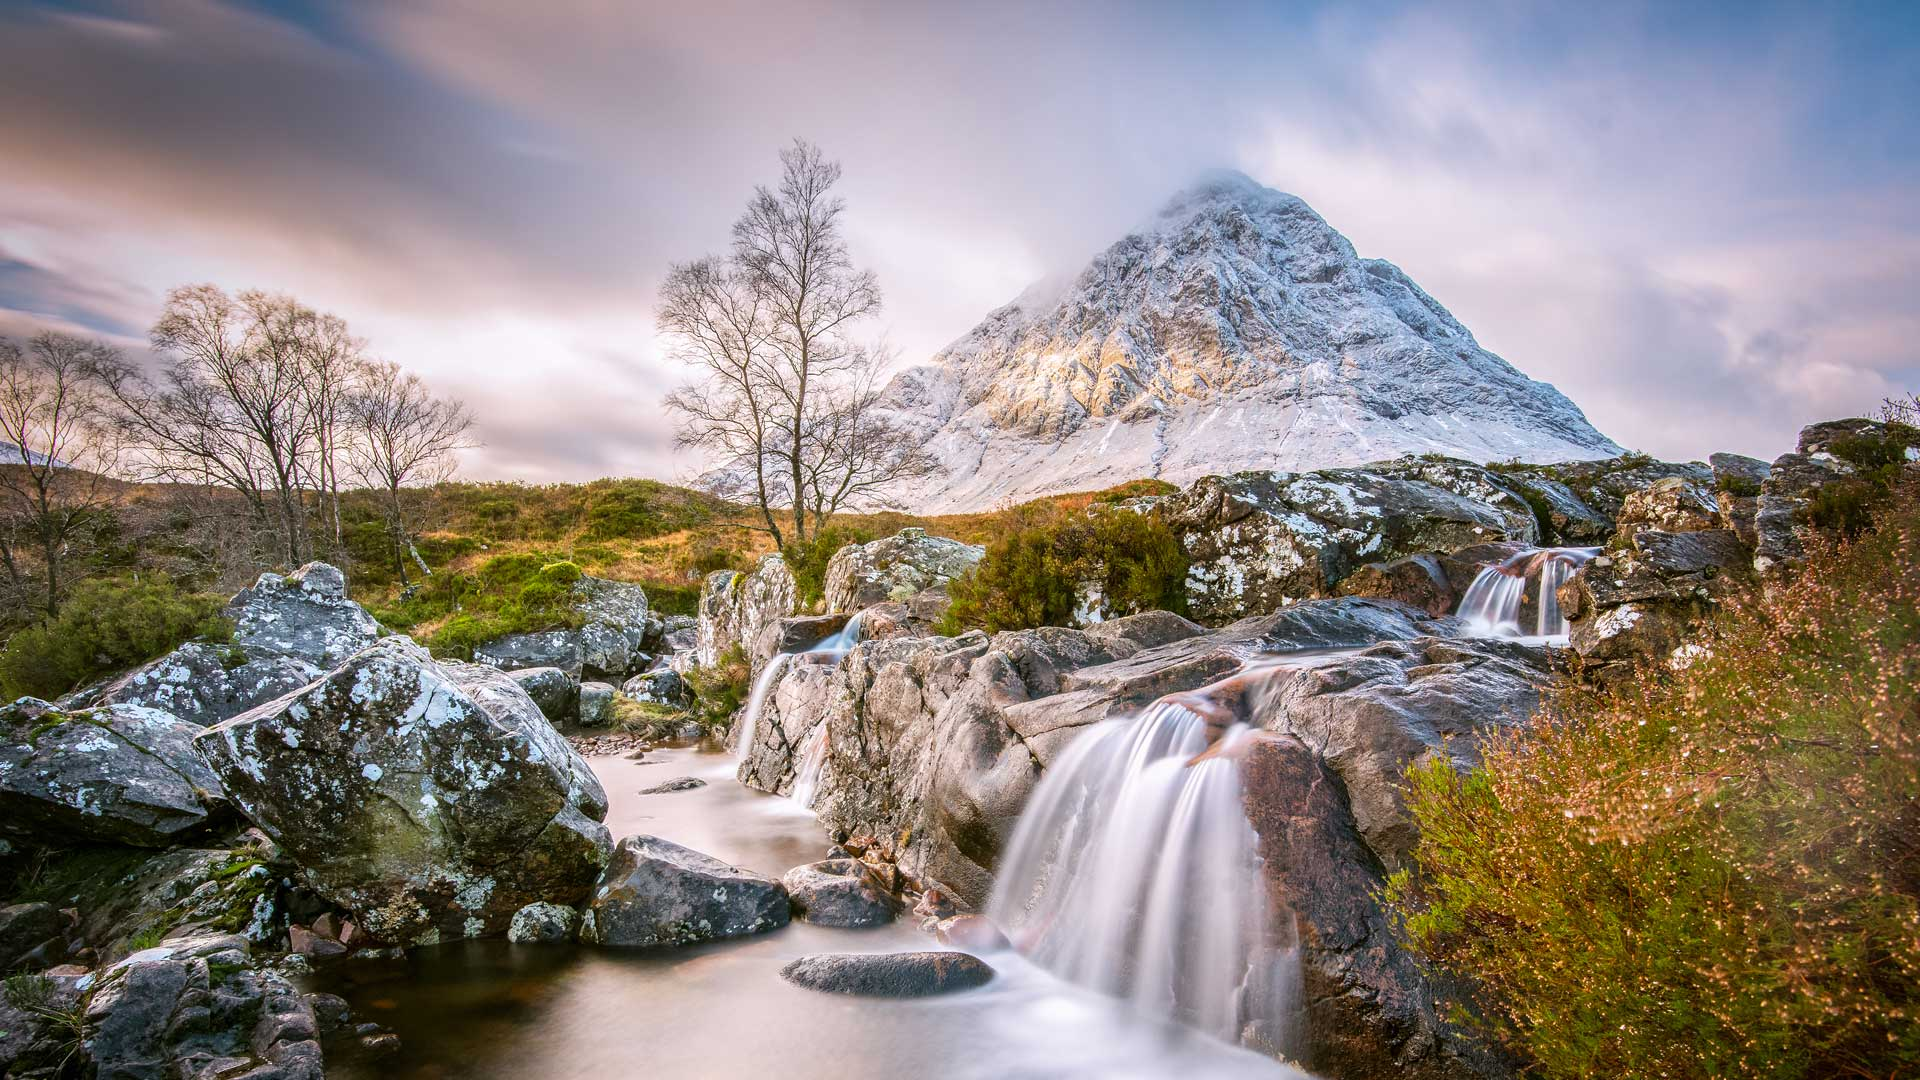 View of Buachaille Etive Mor in the Scottish Highlands (© Gavin82/Getty Images)